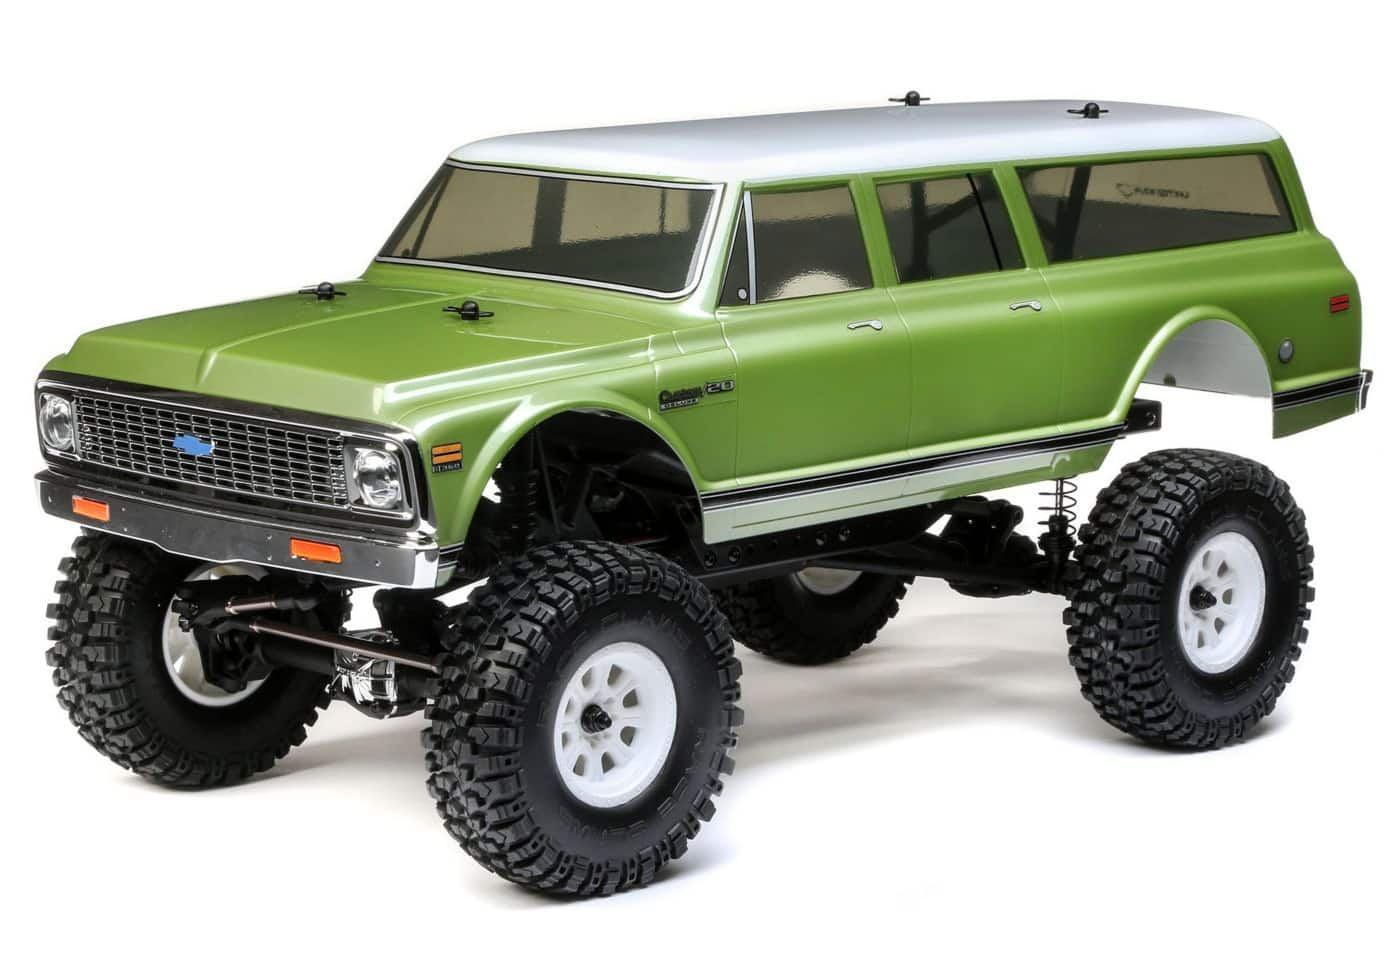 A Budget Brute: Vaterra's 1972 Chevy Suburban Ascender-S